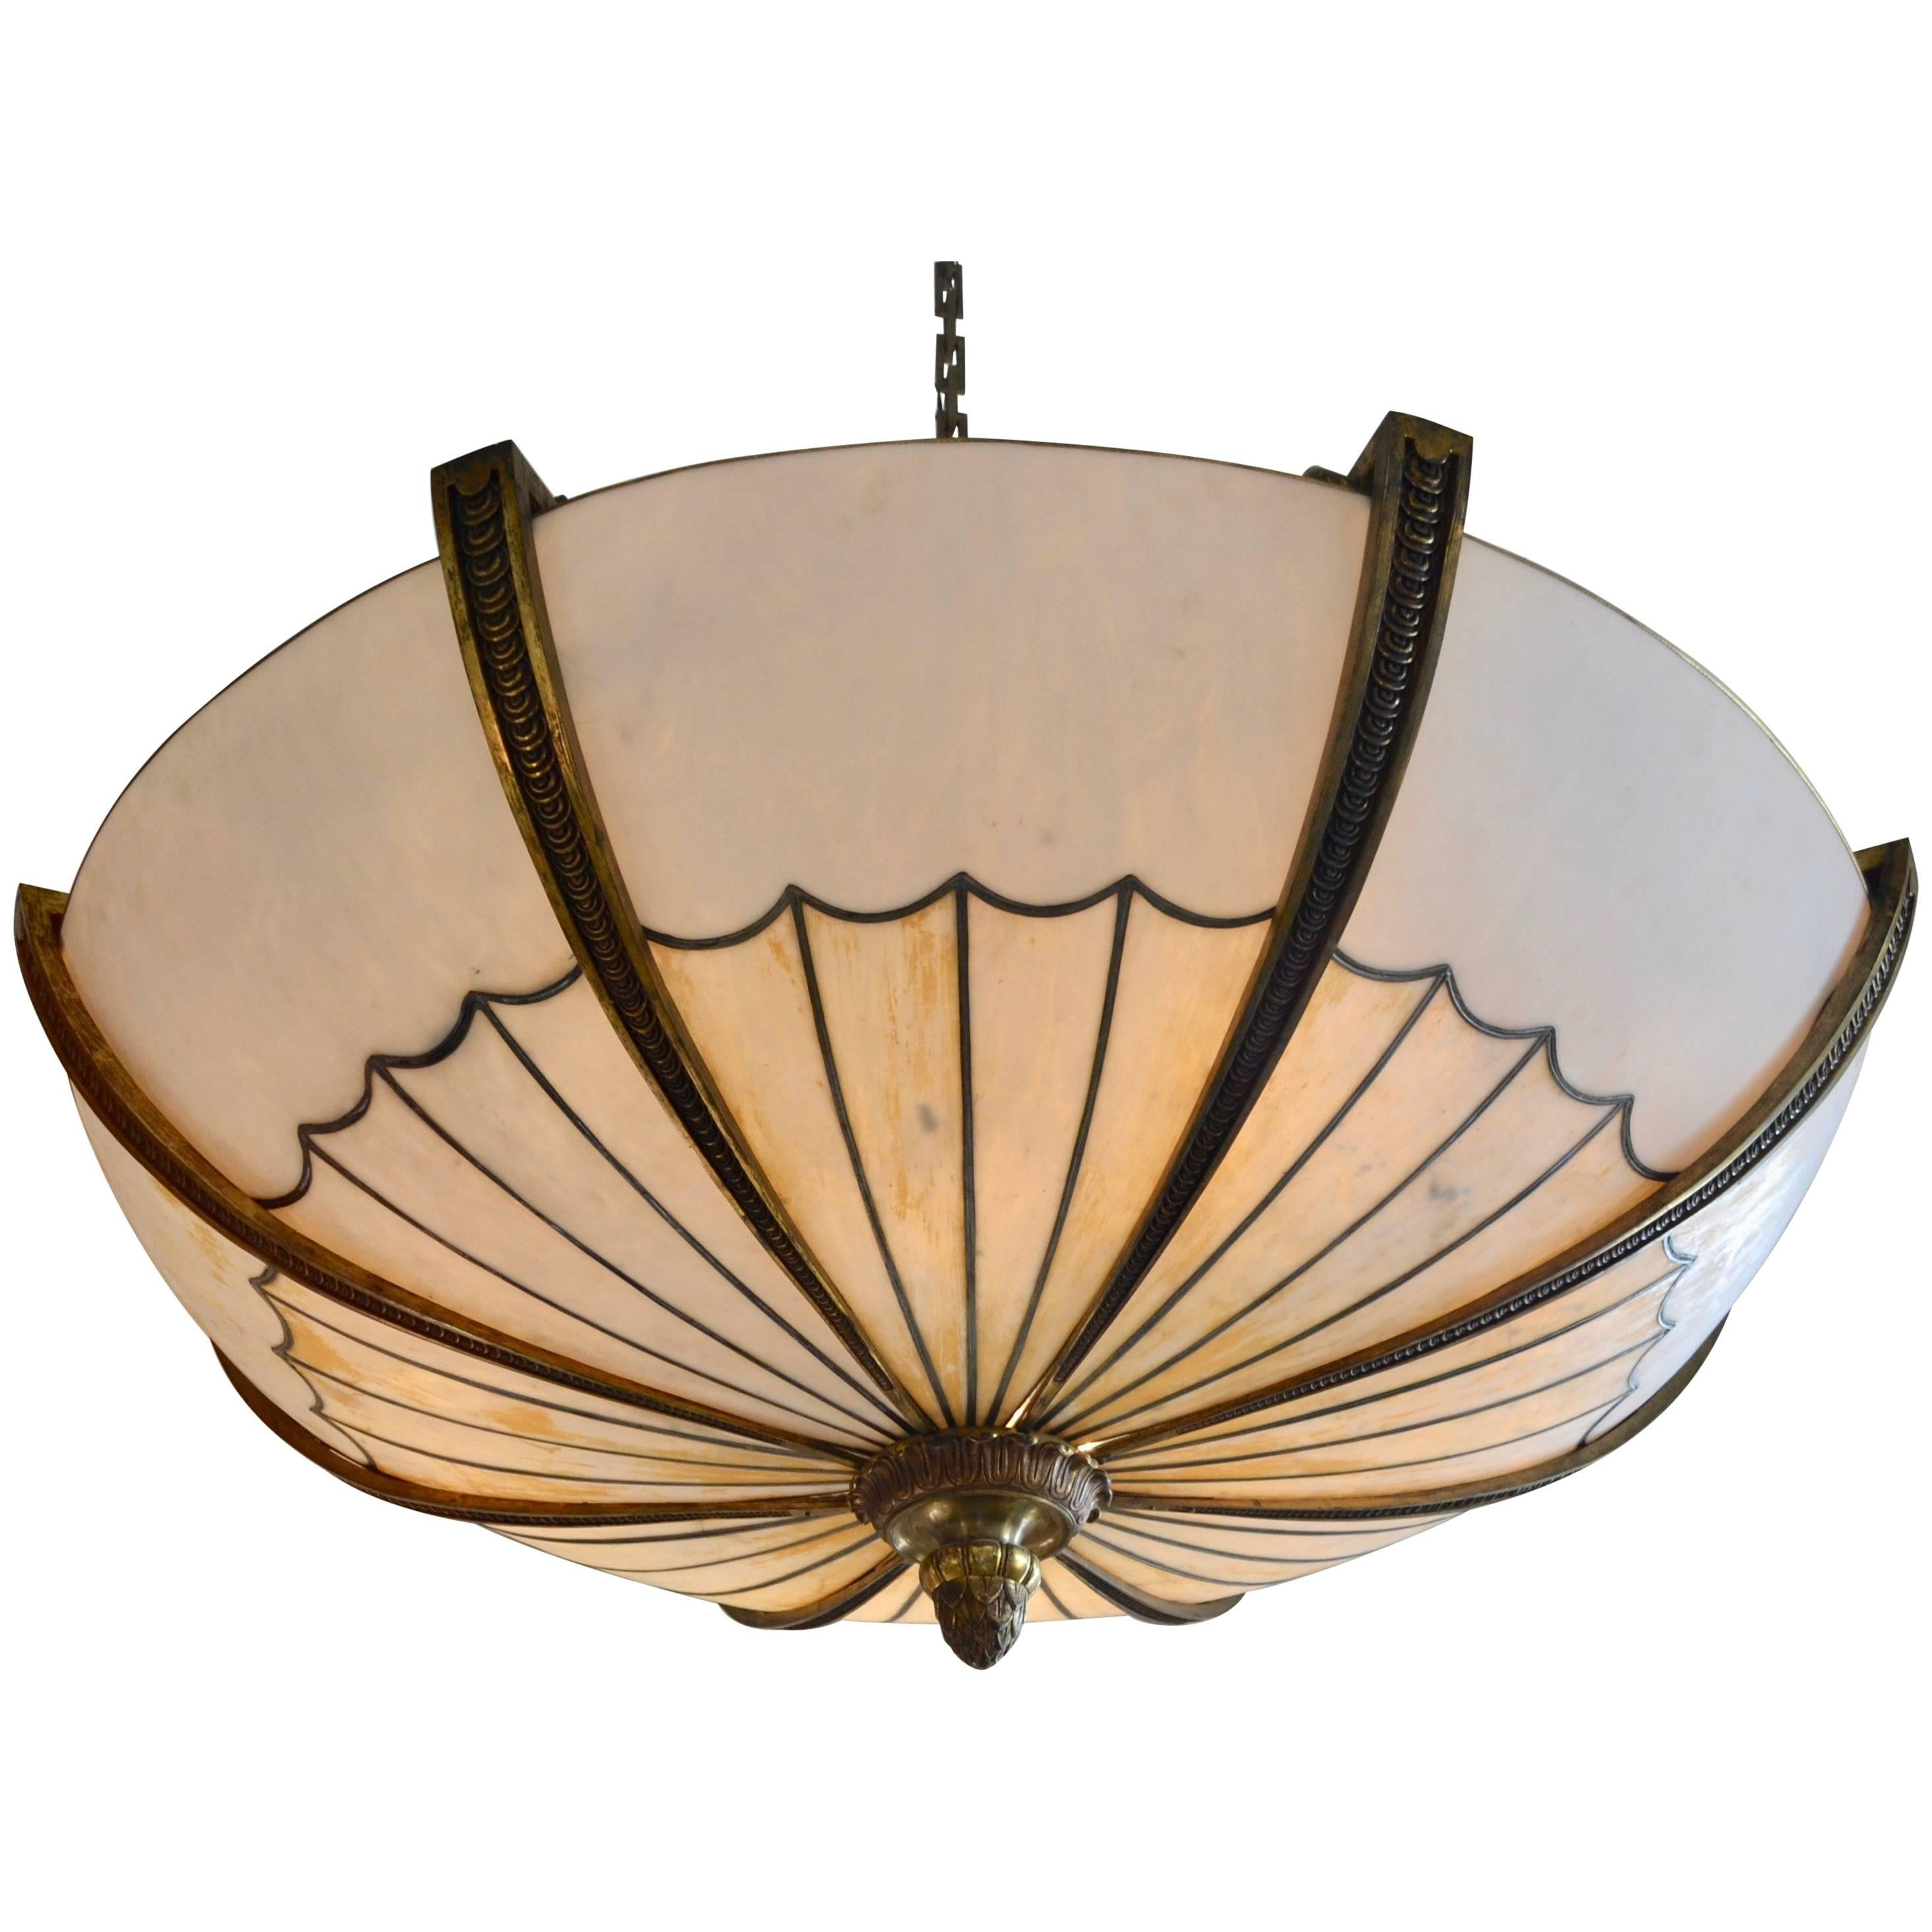 Monumental gilt bronze and calcite glass chandelier for sale at 1stdibs